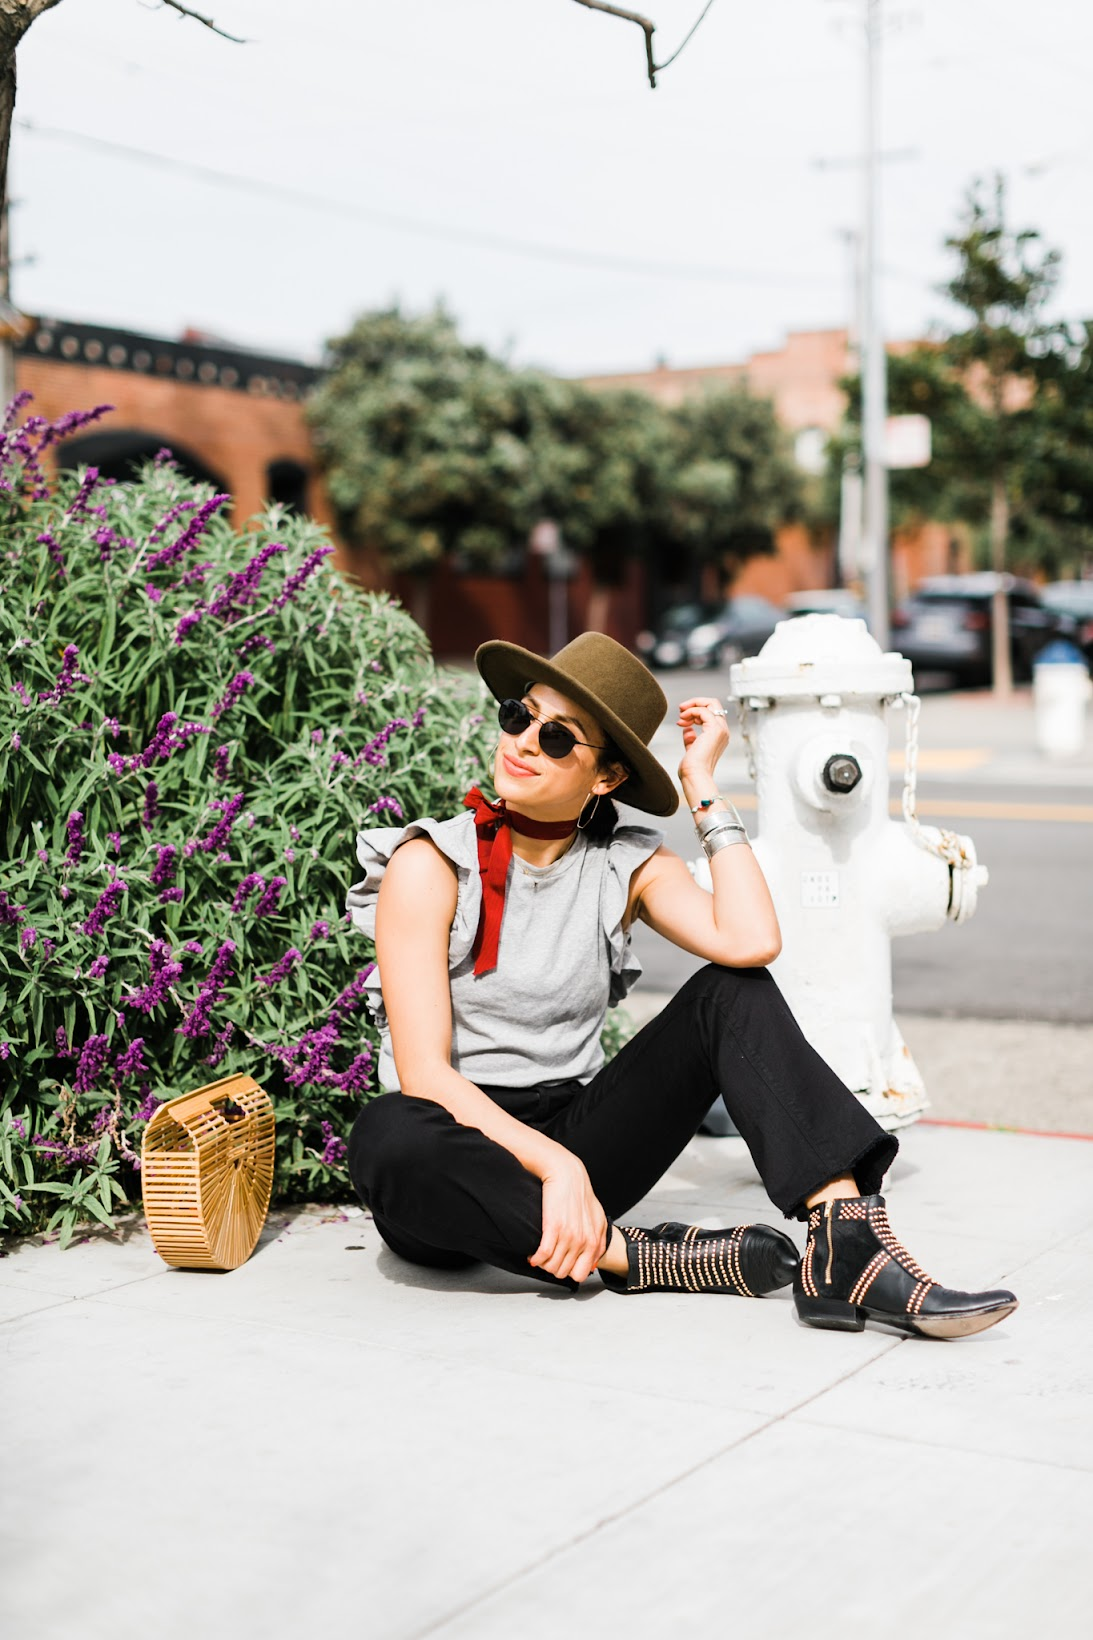 most photogenic street in San Francisco, coolest neighborhood in San Francisco, how to dress for a San Francisco summer, Cult Gaia, Jigsaw denim, ruffle tee shirt, Anine Bing Charlie boots, Goorin Bros. hat